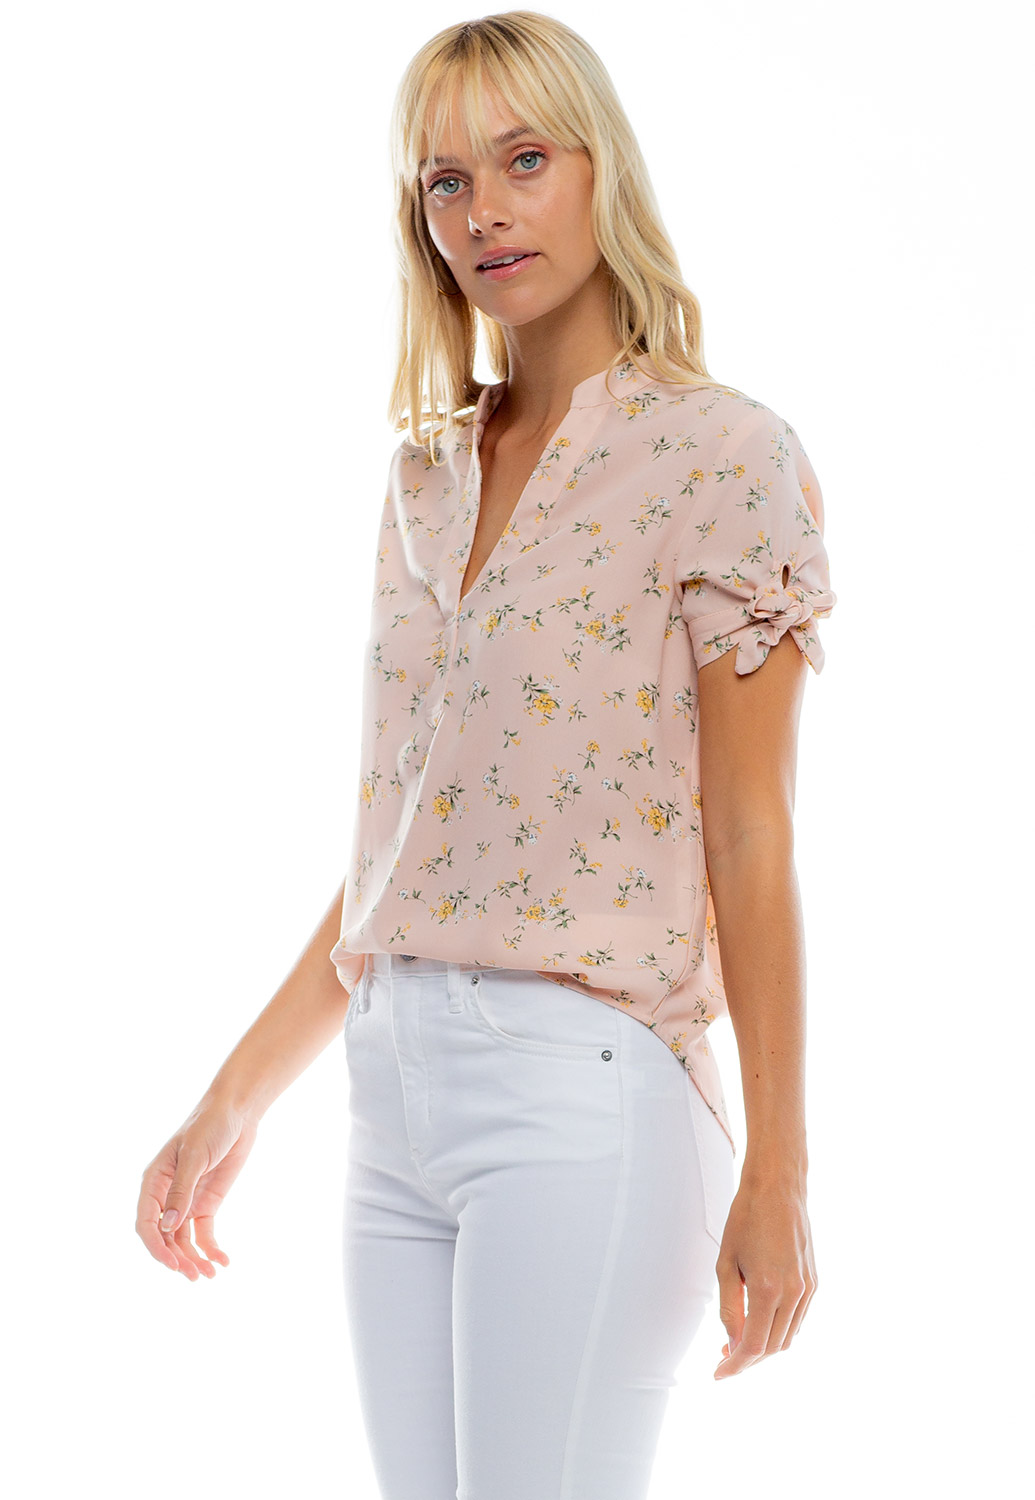 V-Neck Floral Blouse With Tie Sleeve Details